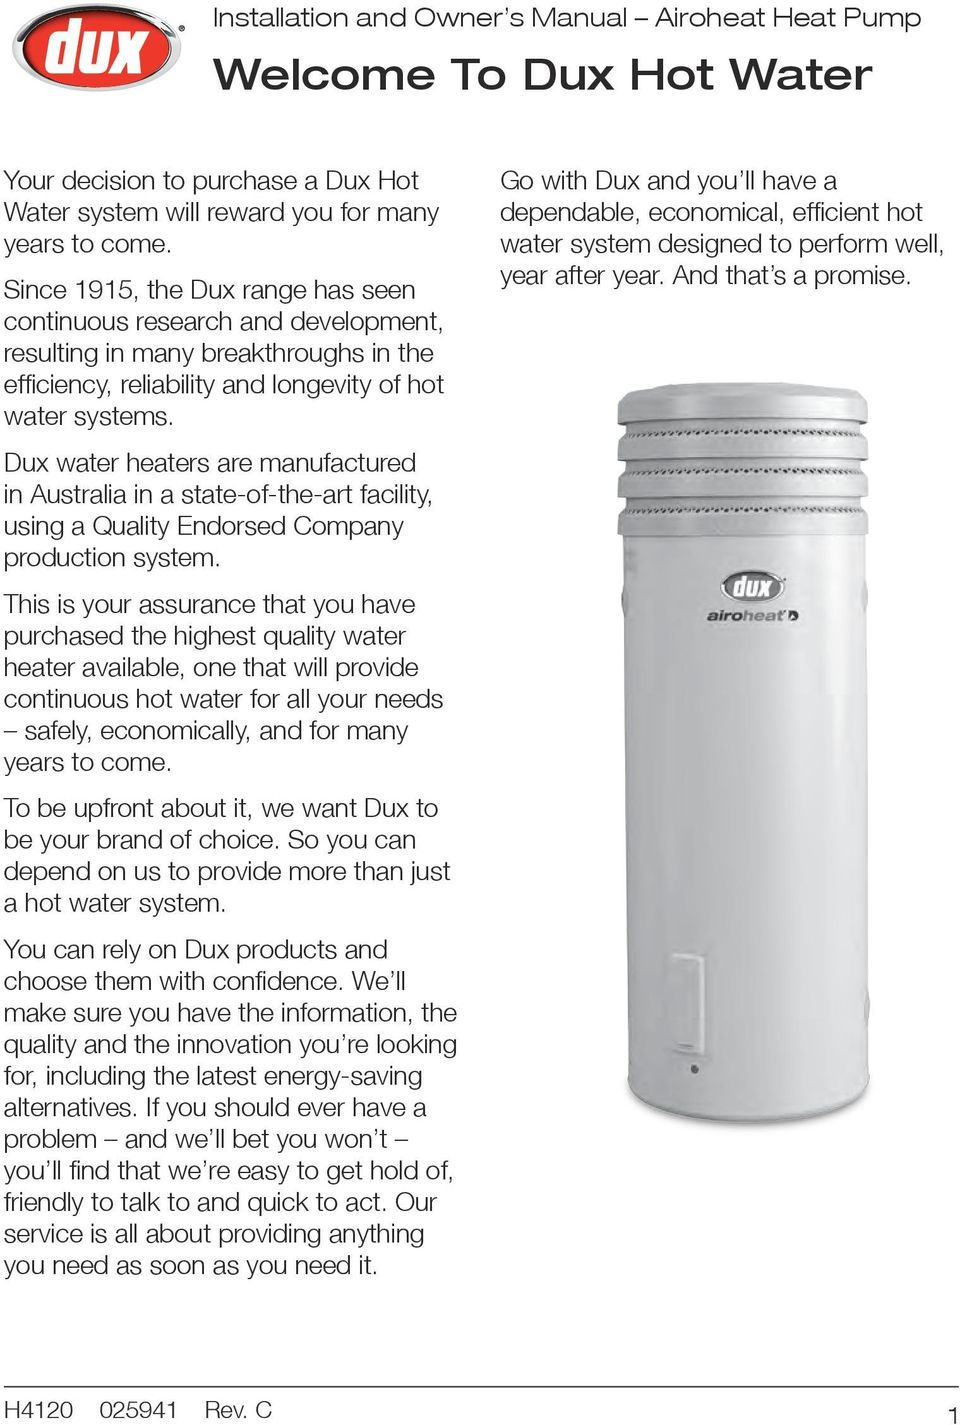 Dux water heaters are manufactured in Australia in a state-of-the-art facility, using a Quality Endorsed Company production system.